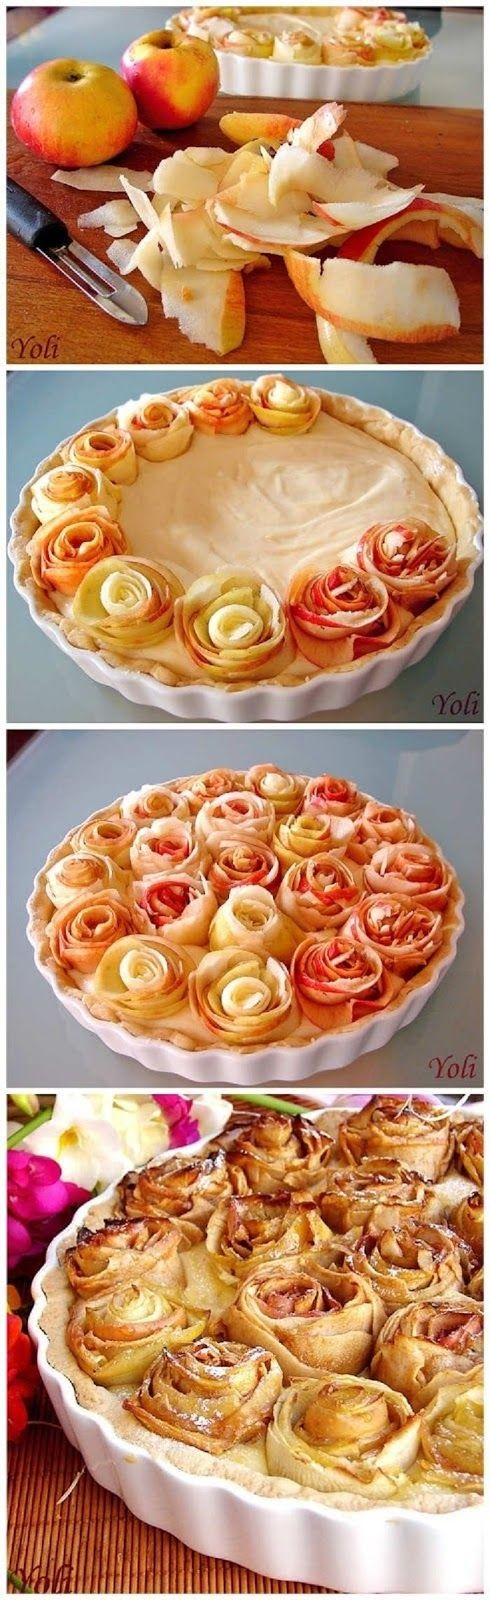 Tarta de flores de manzana - DIY Flower Apple Pie, gorgeous!